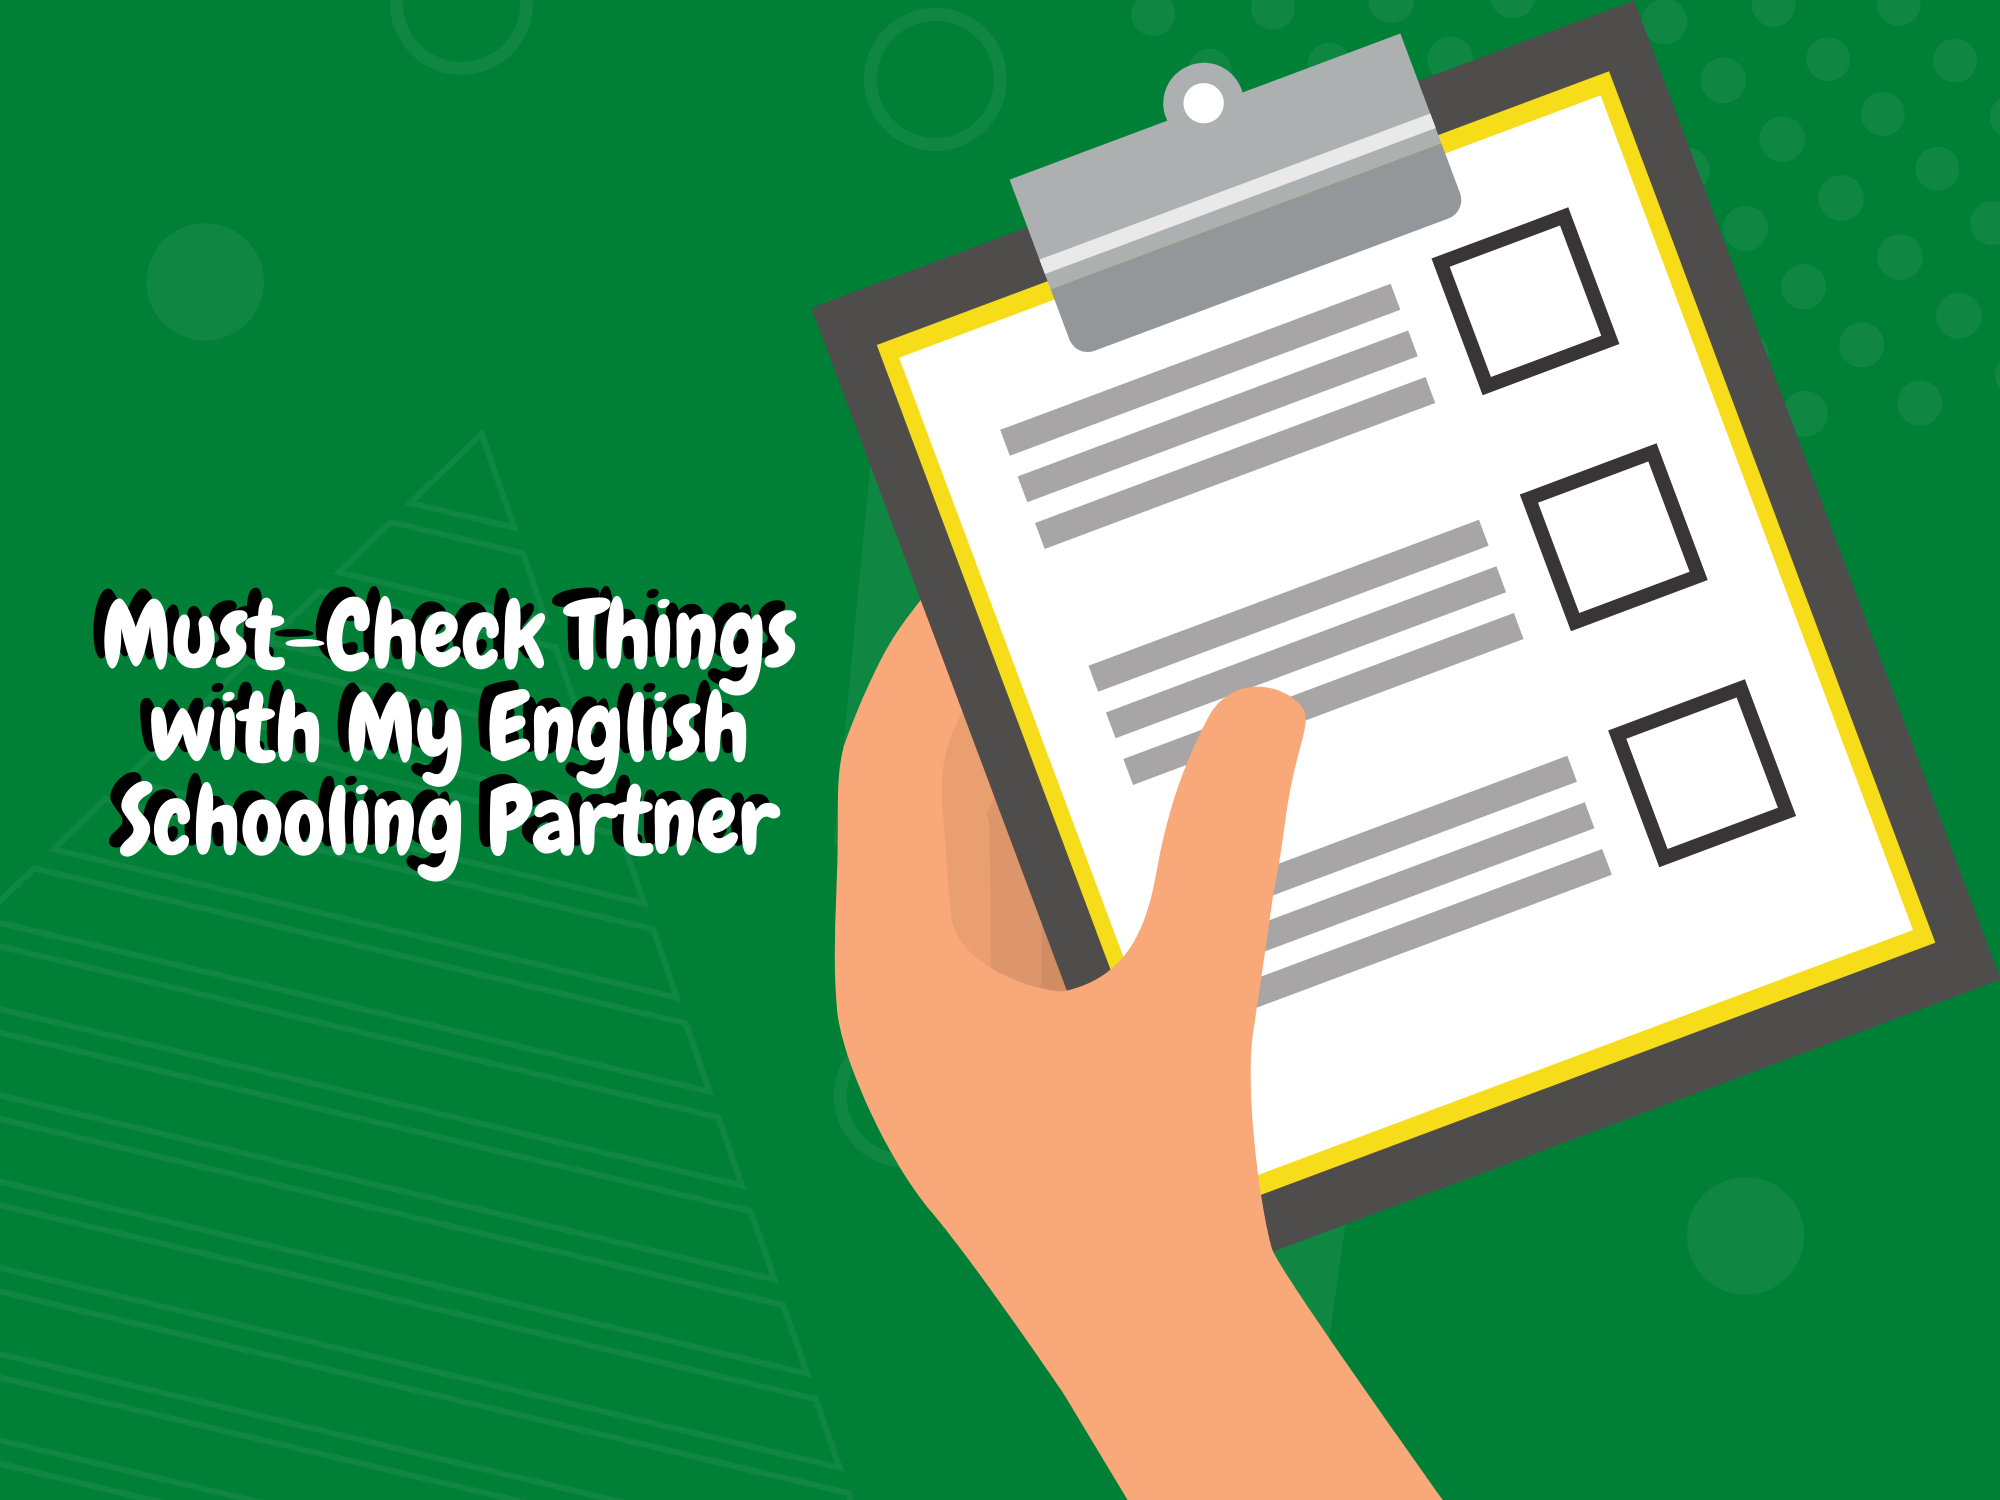 Must-Check-Things-with-My-English-Schooling-Partner